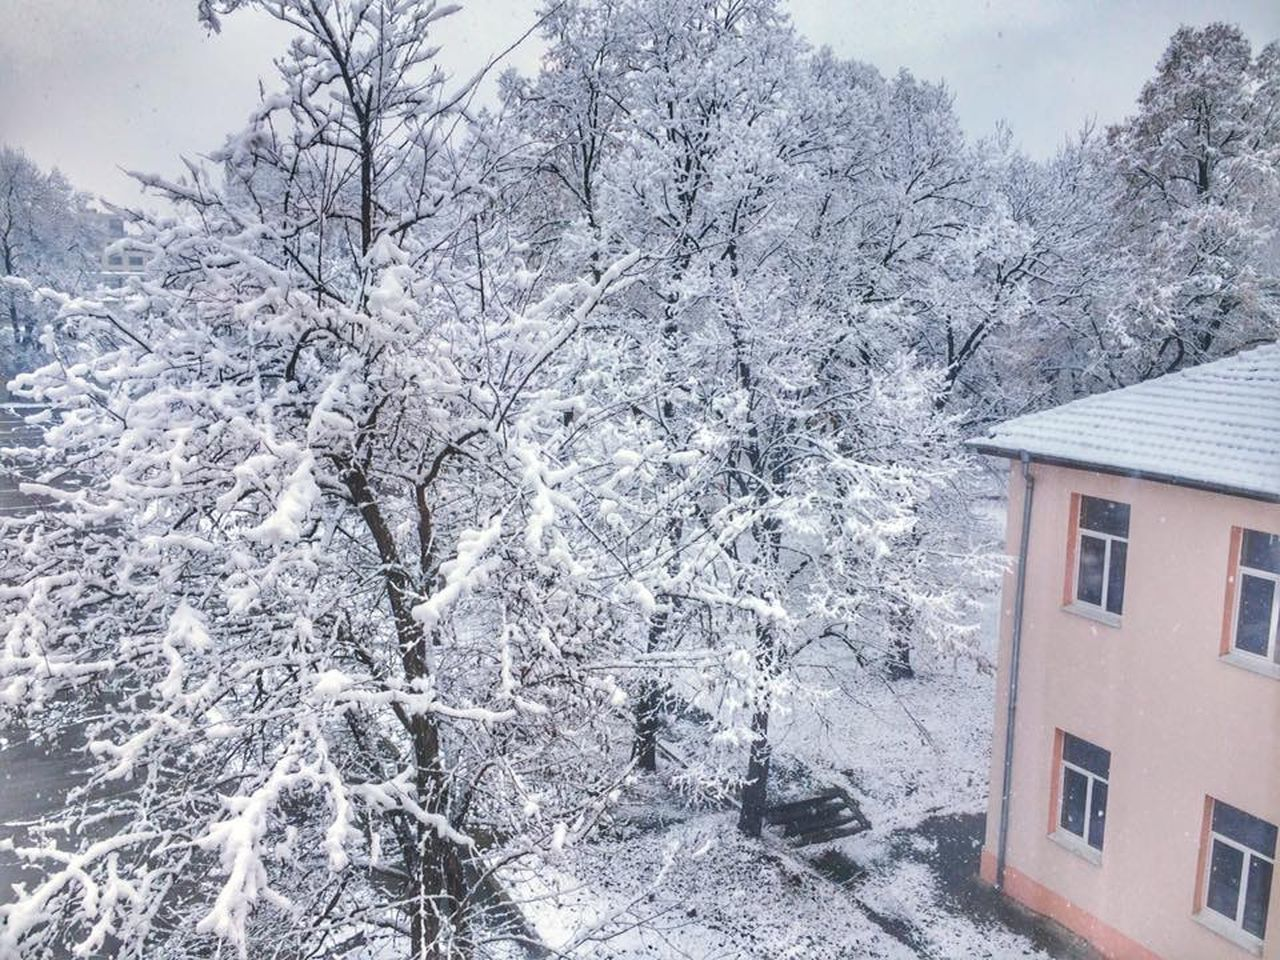 winter, snow, architecture, no people, nature, building exterior, tree, cold temperature, built structure, day, branch, outdoors, beauty in nature, sky